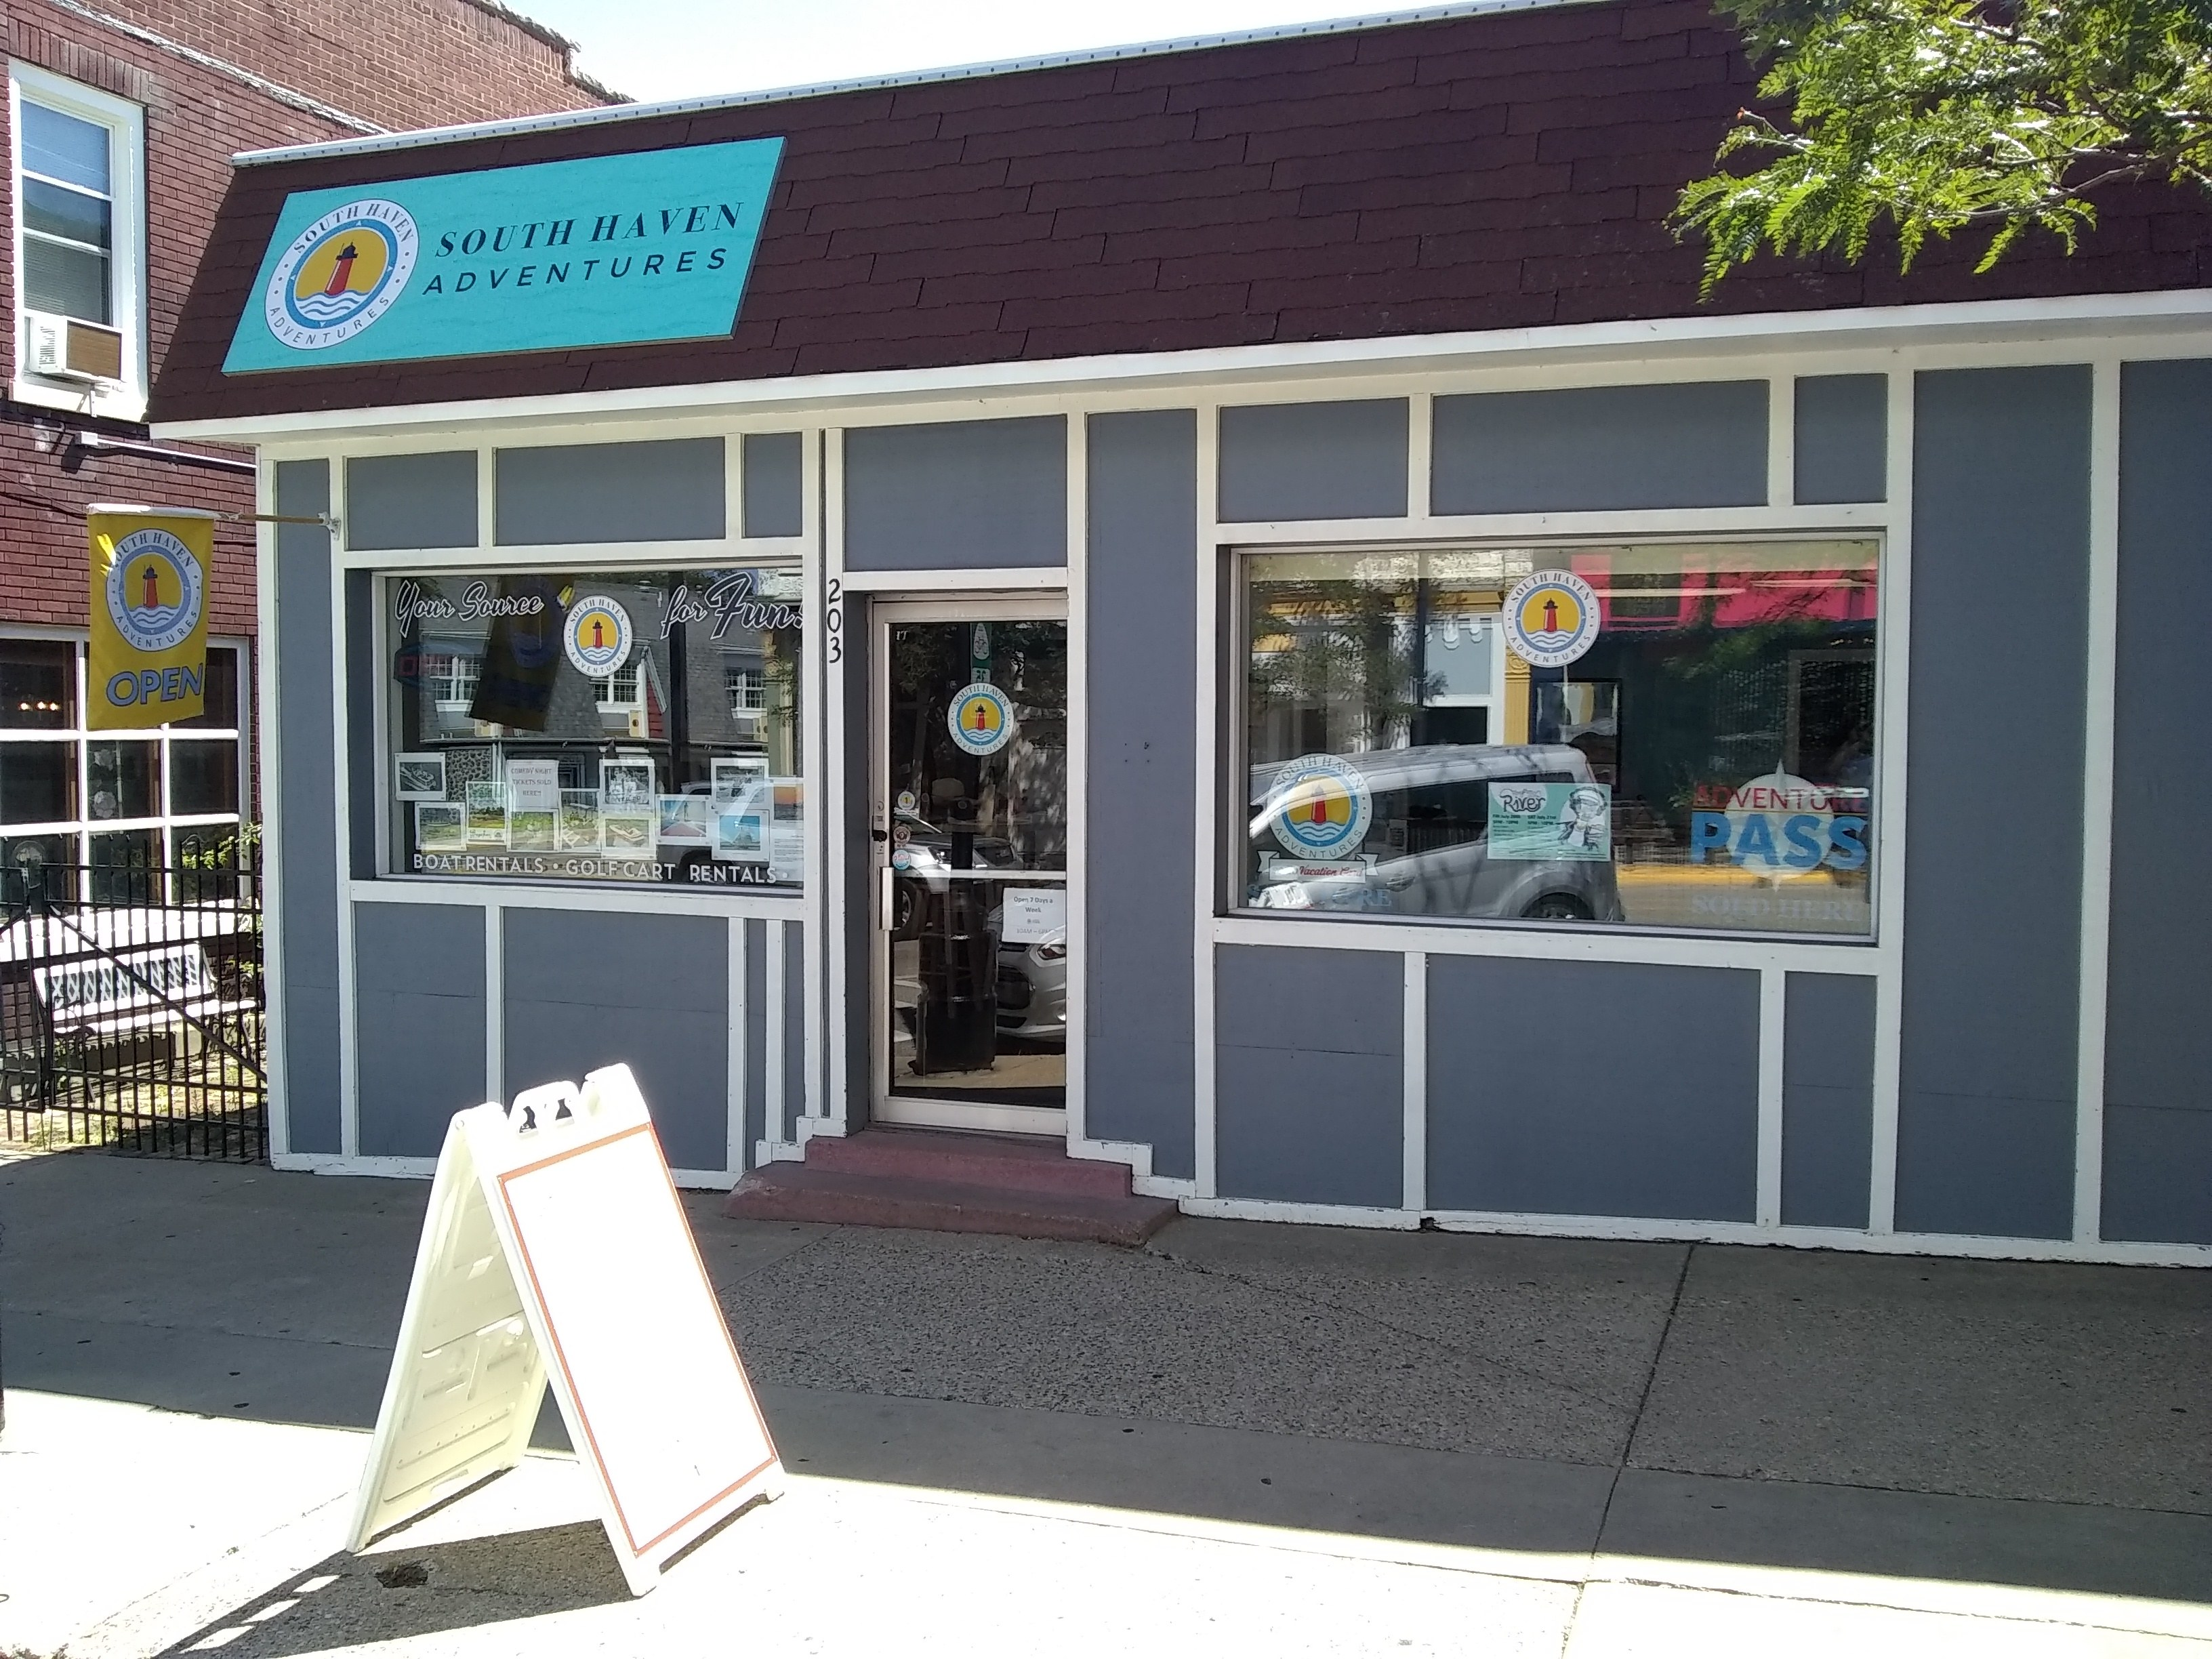 Picture of South Haven Adventure's storefront